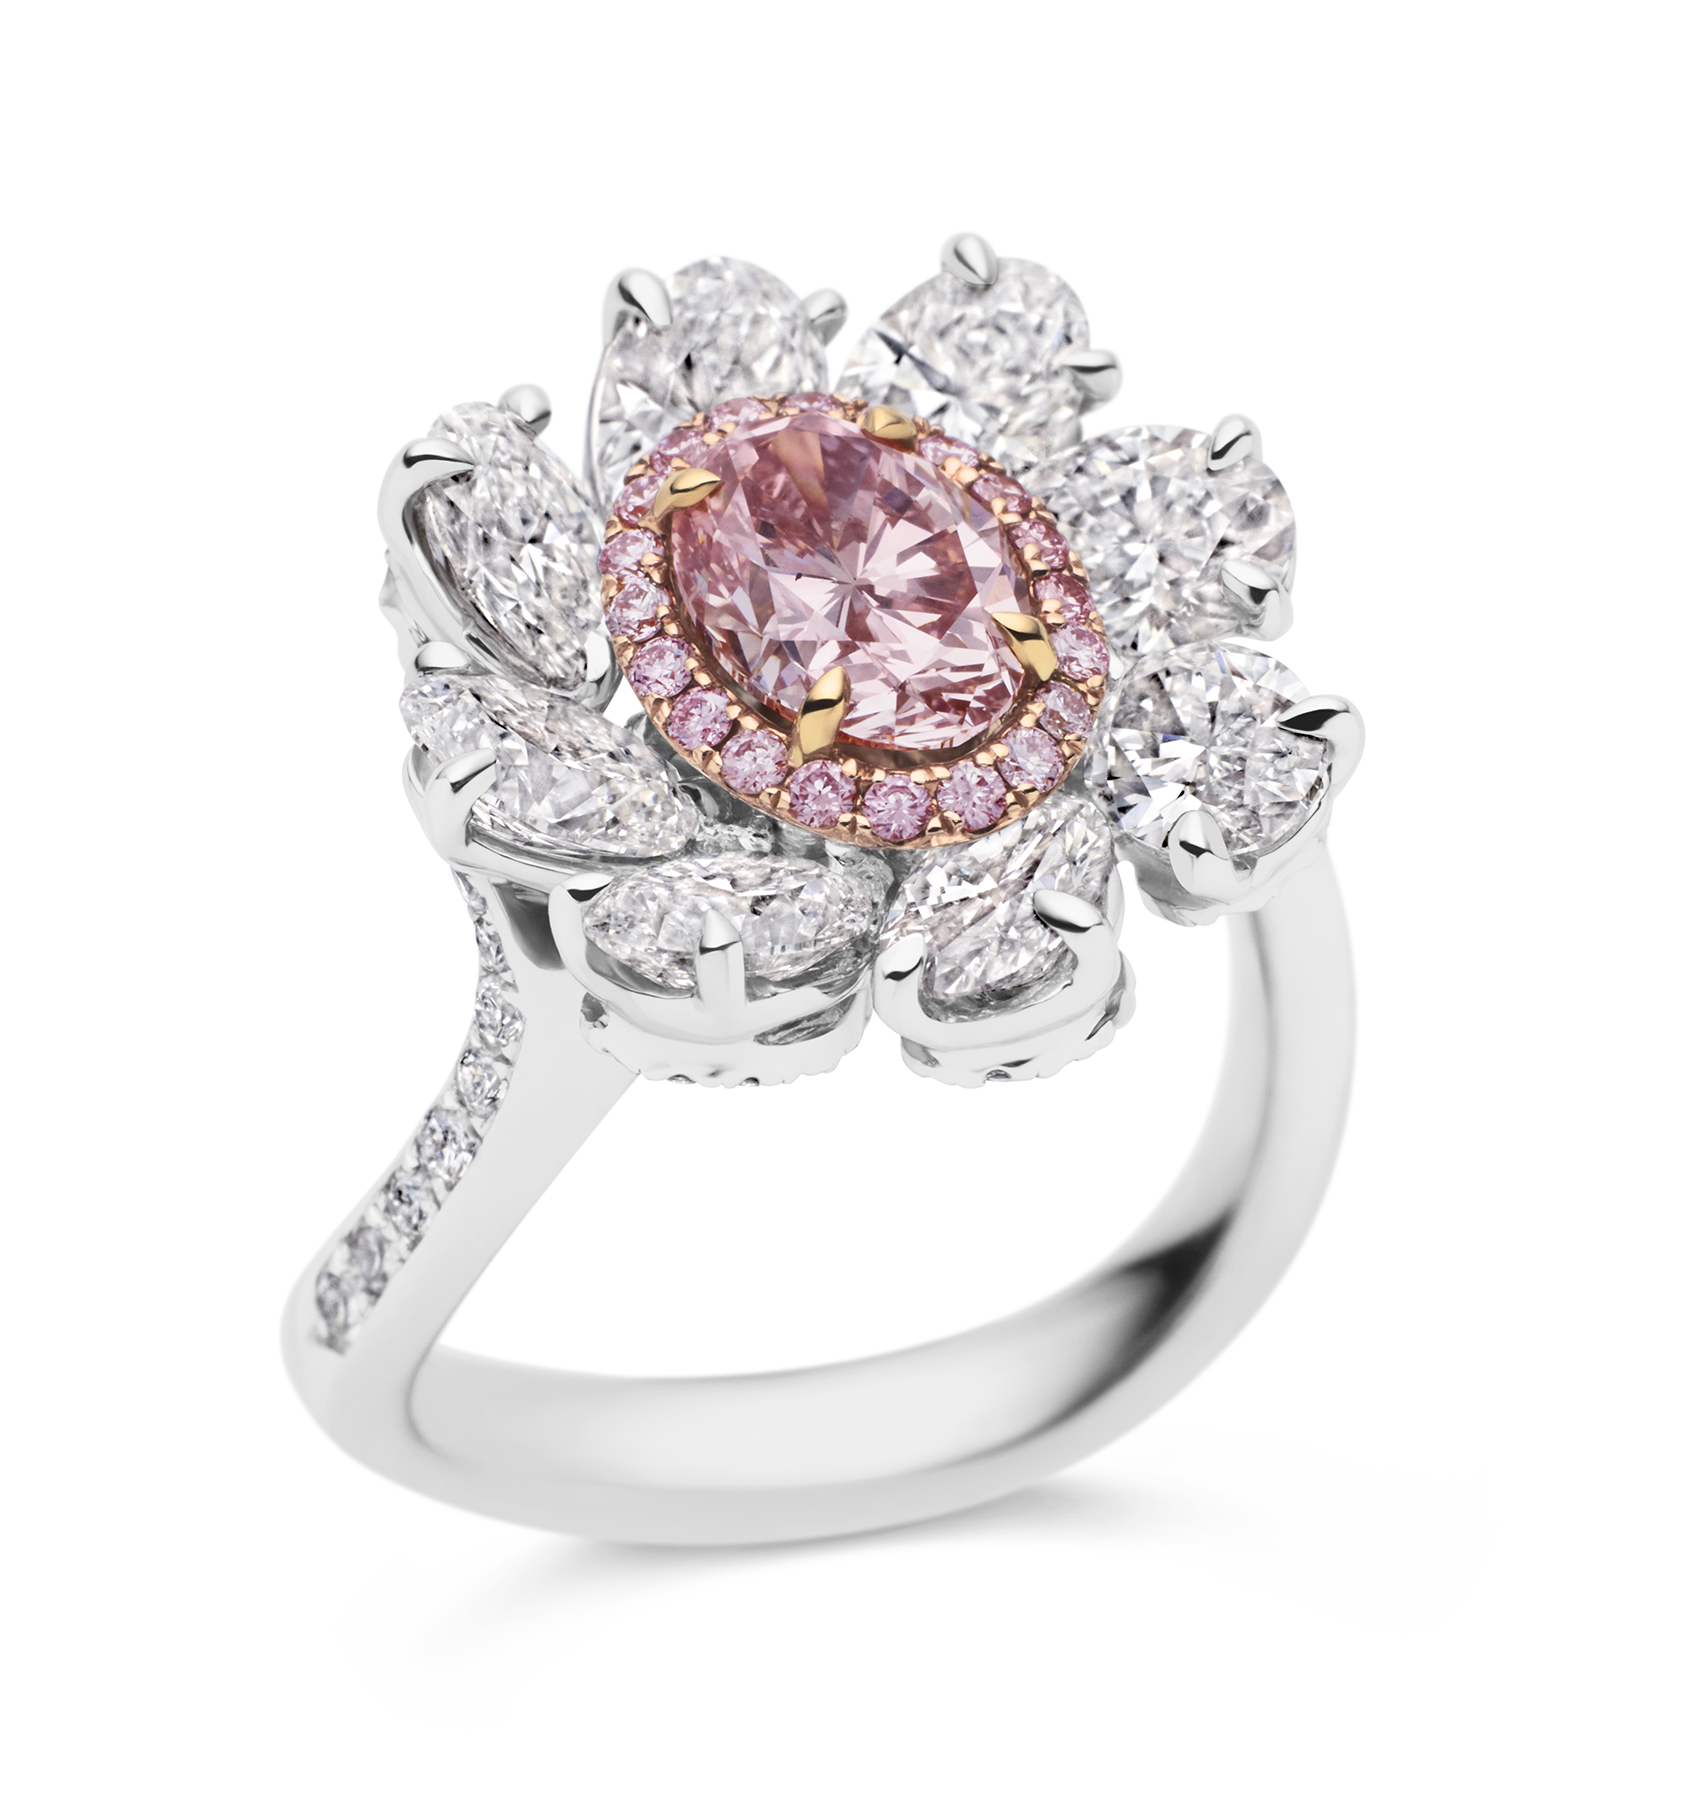 Photo of Argyle Pink and White Diamond Ring